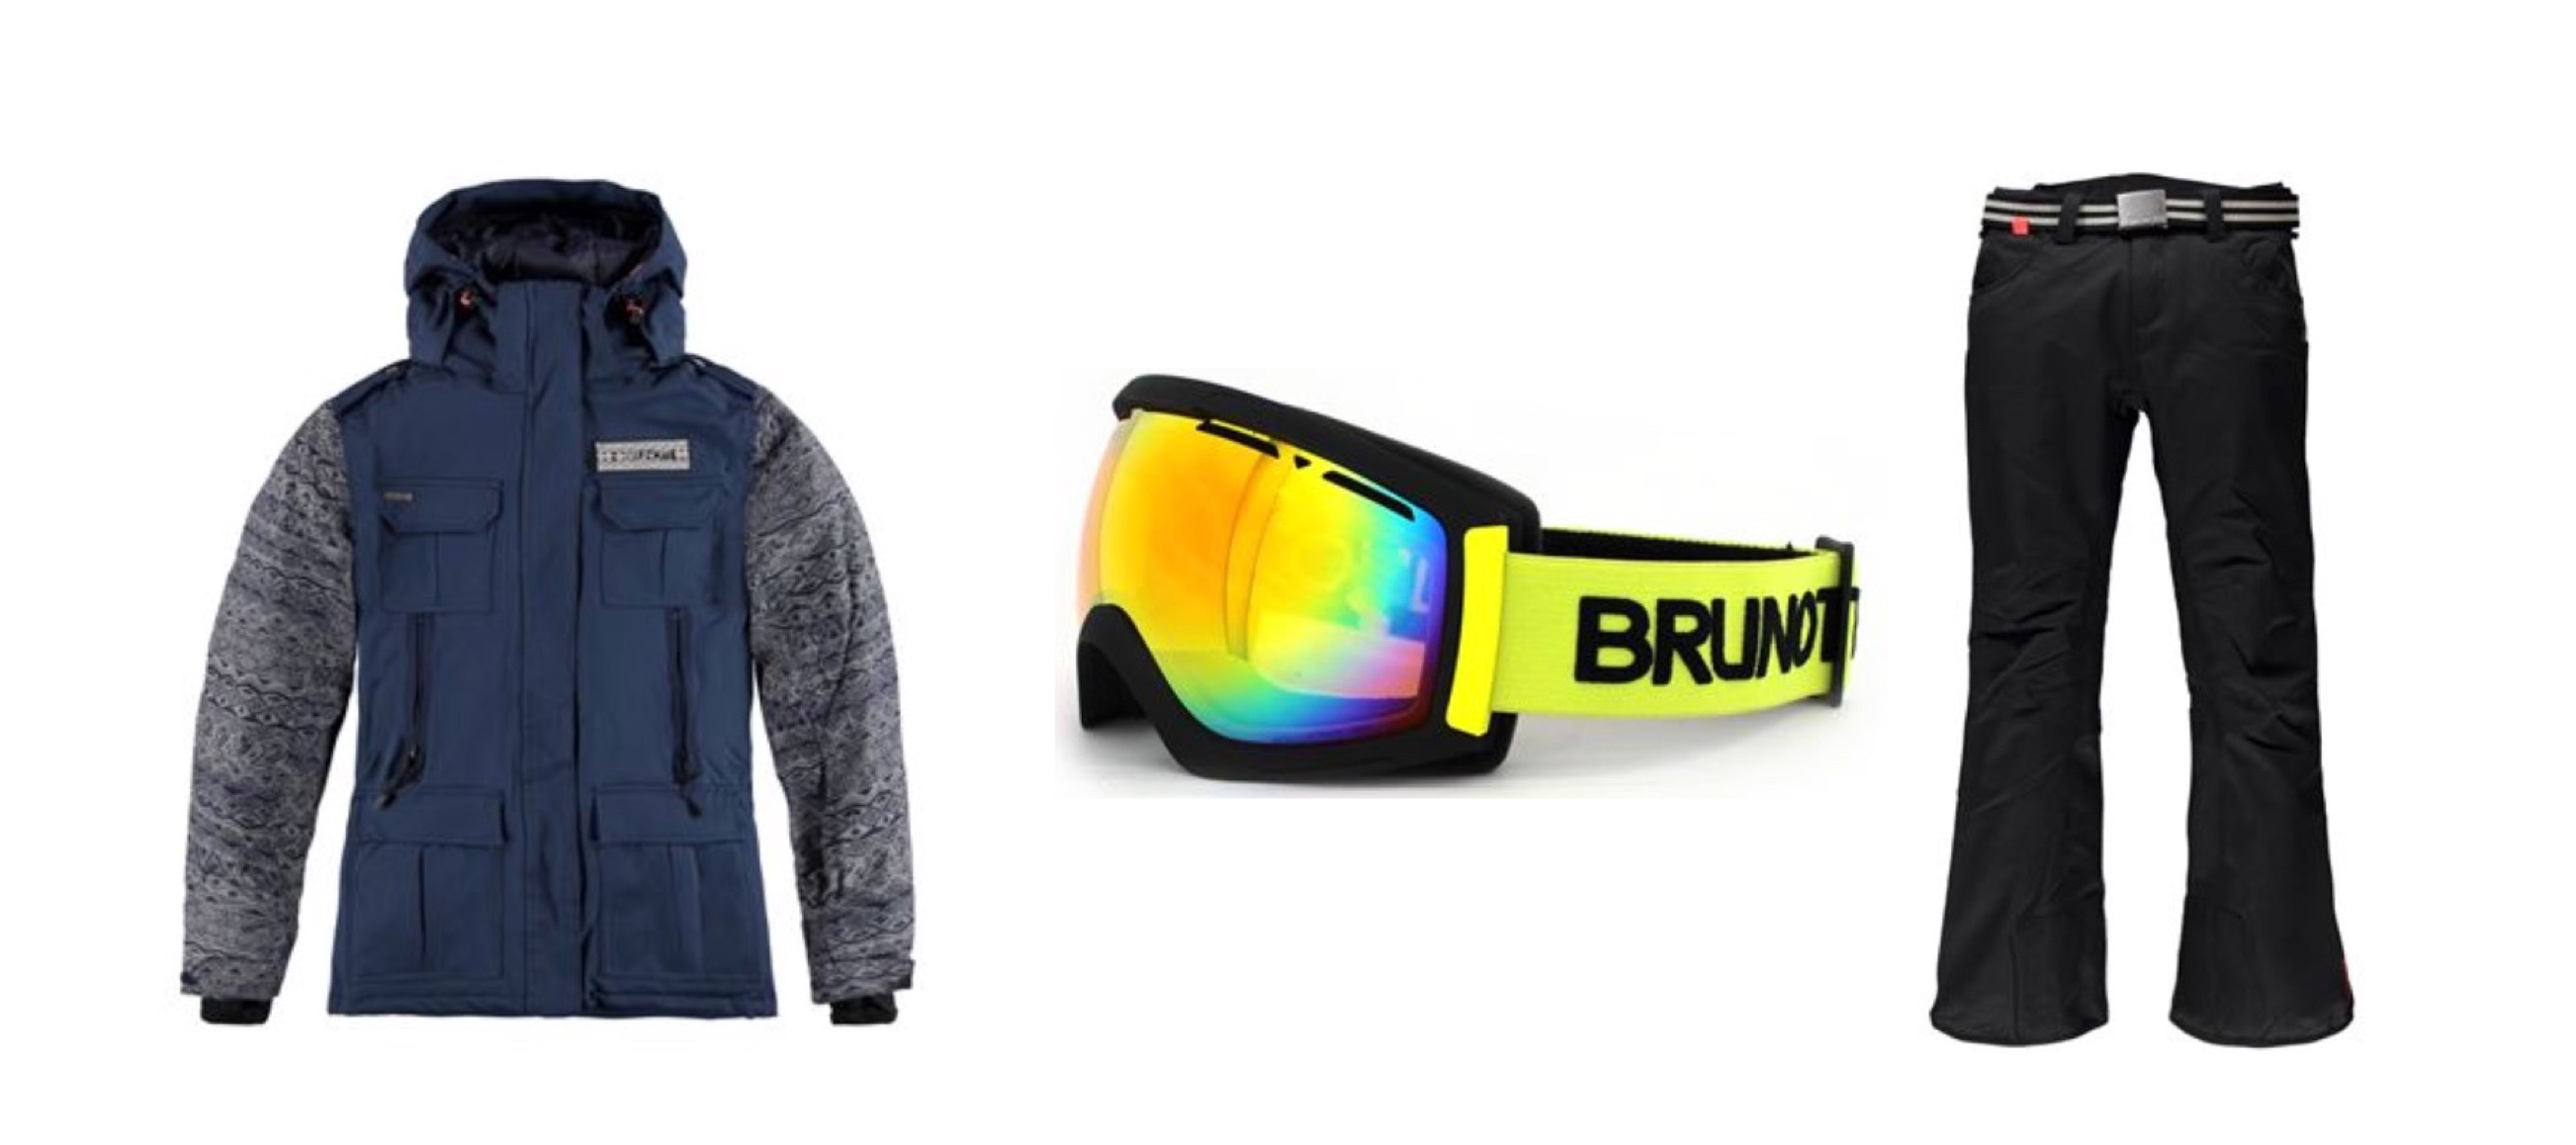 Win Brunotti outfit items